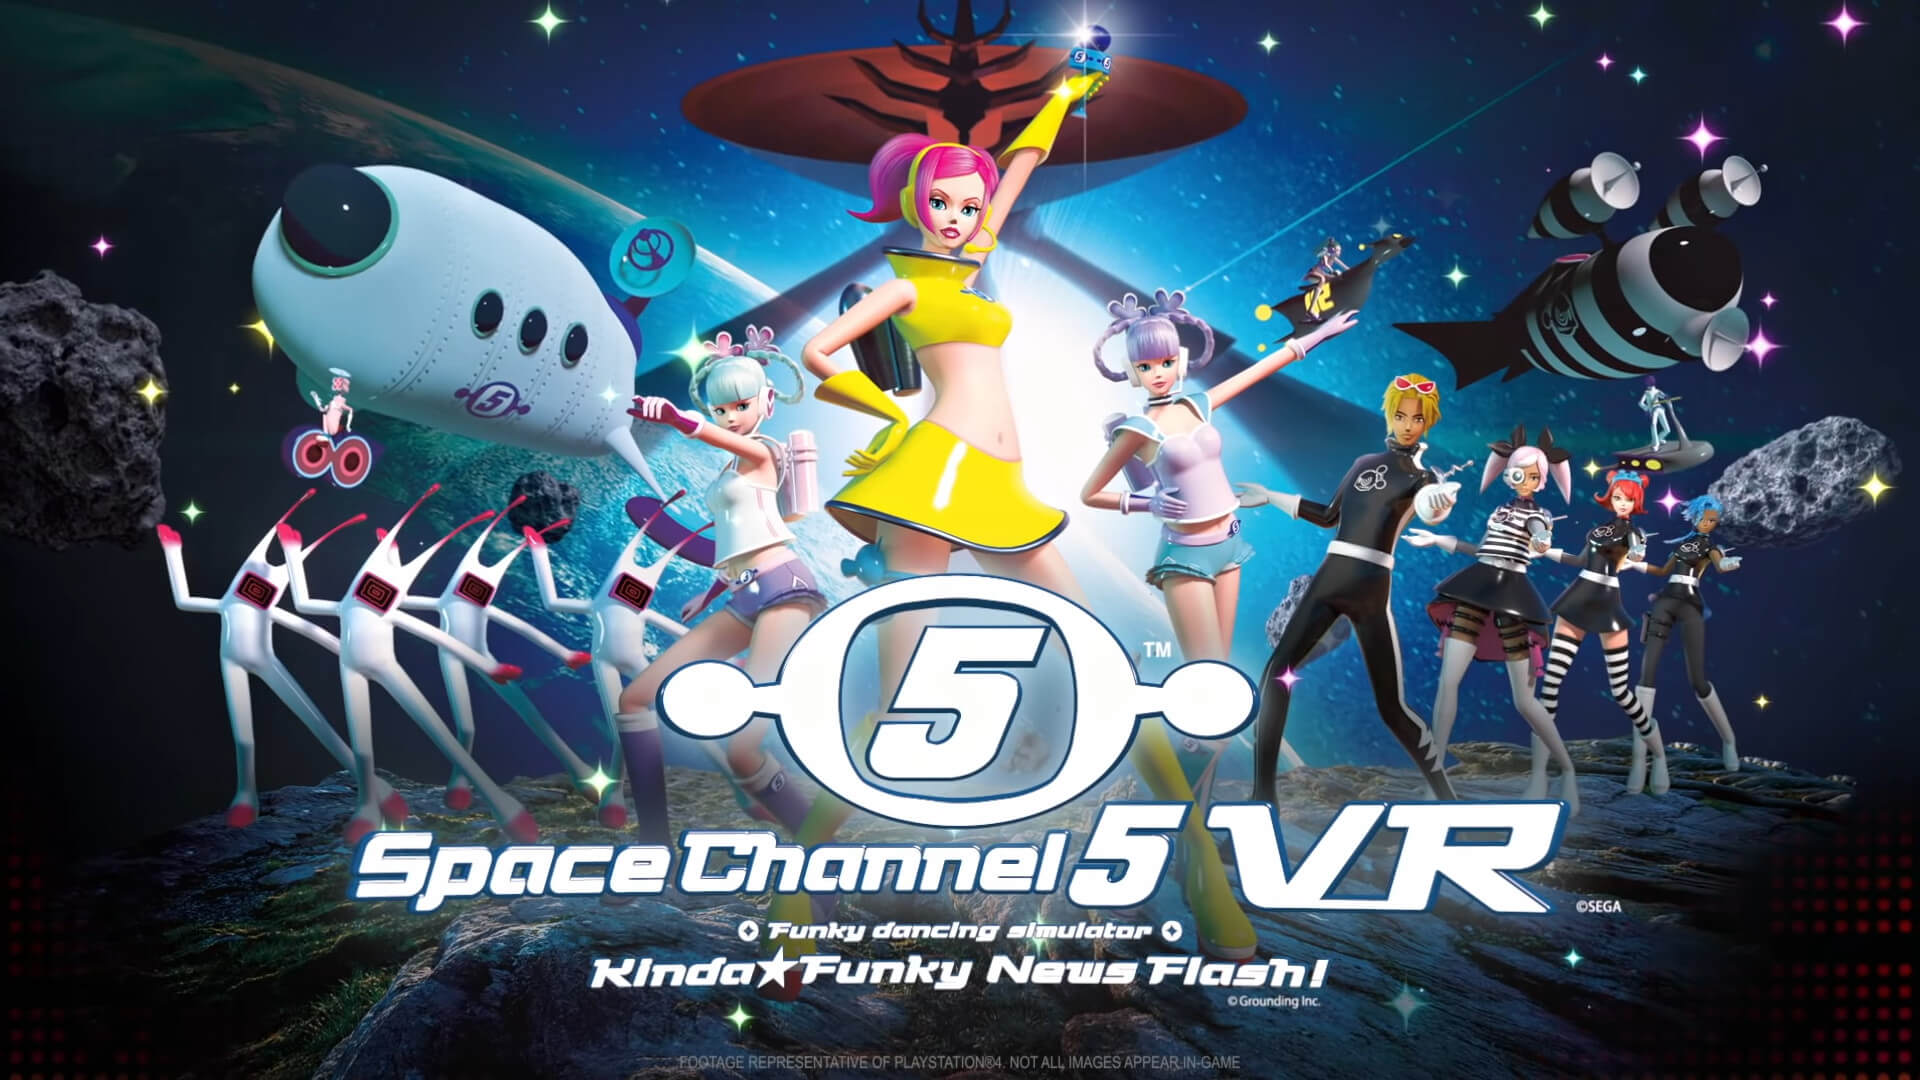 Space Channel 5 VR: Kinda Funky News Flash